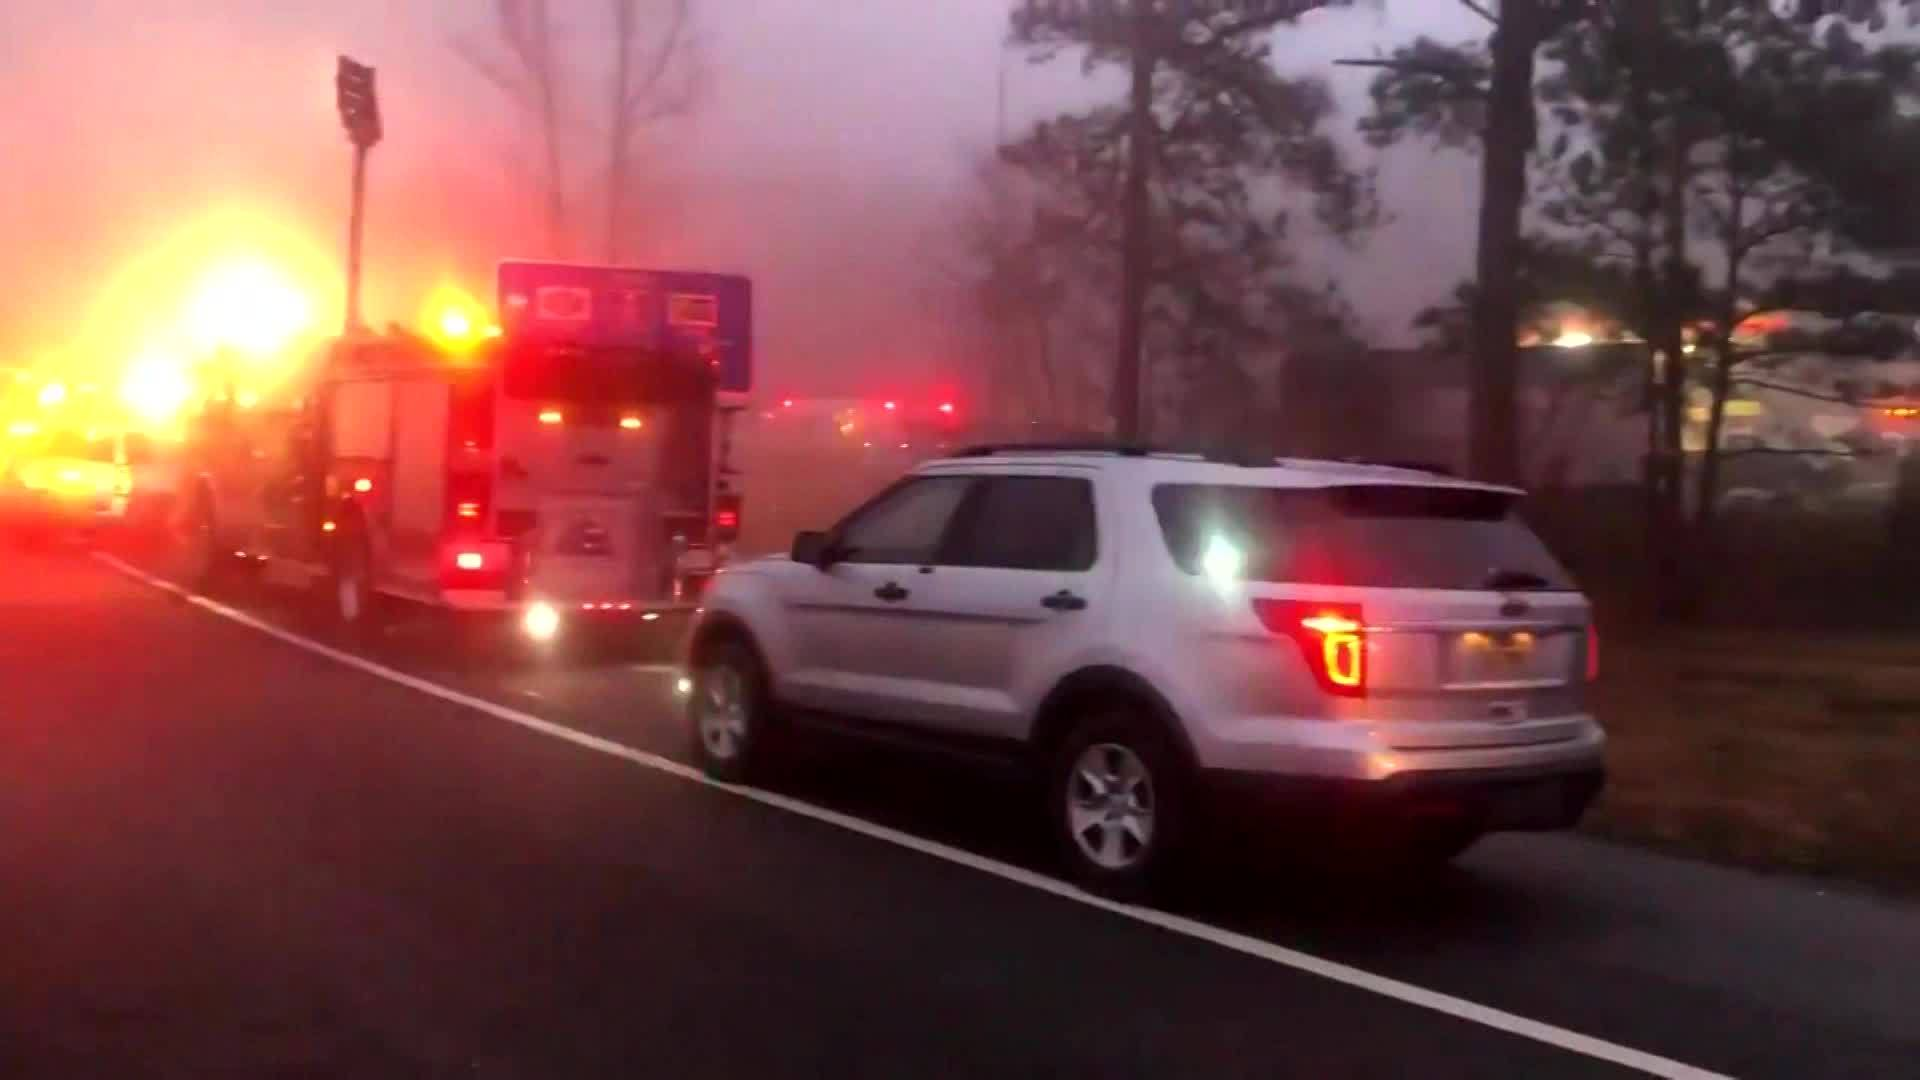 One dead following charter bus crash on I-95 in VA